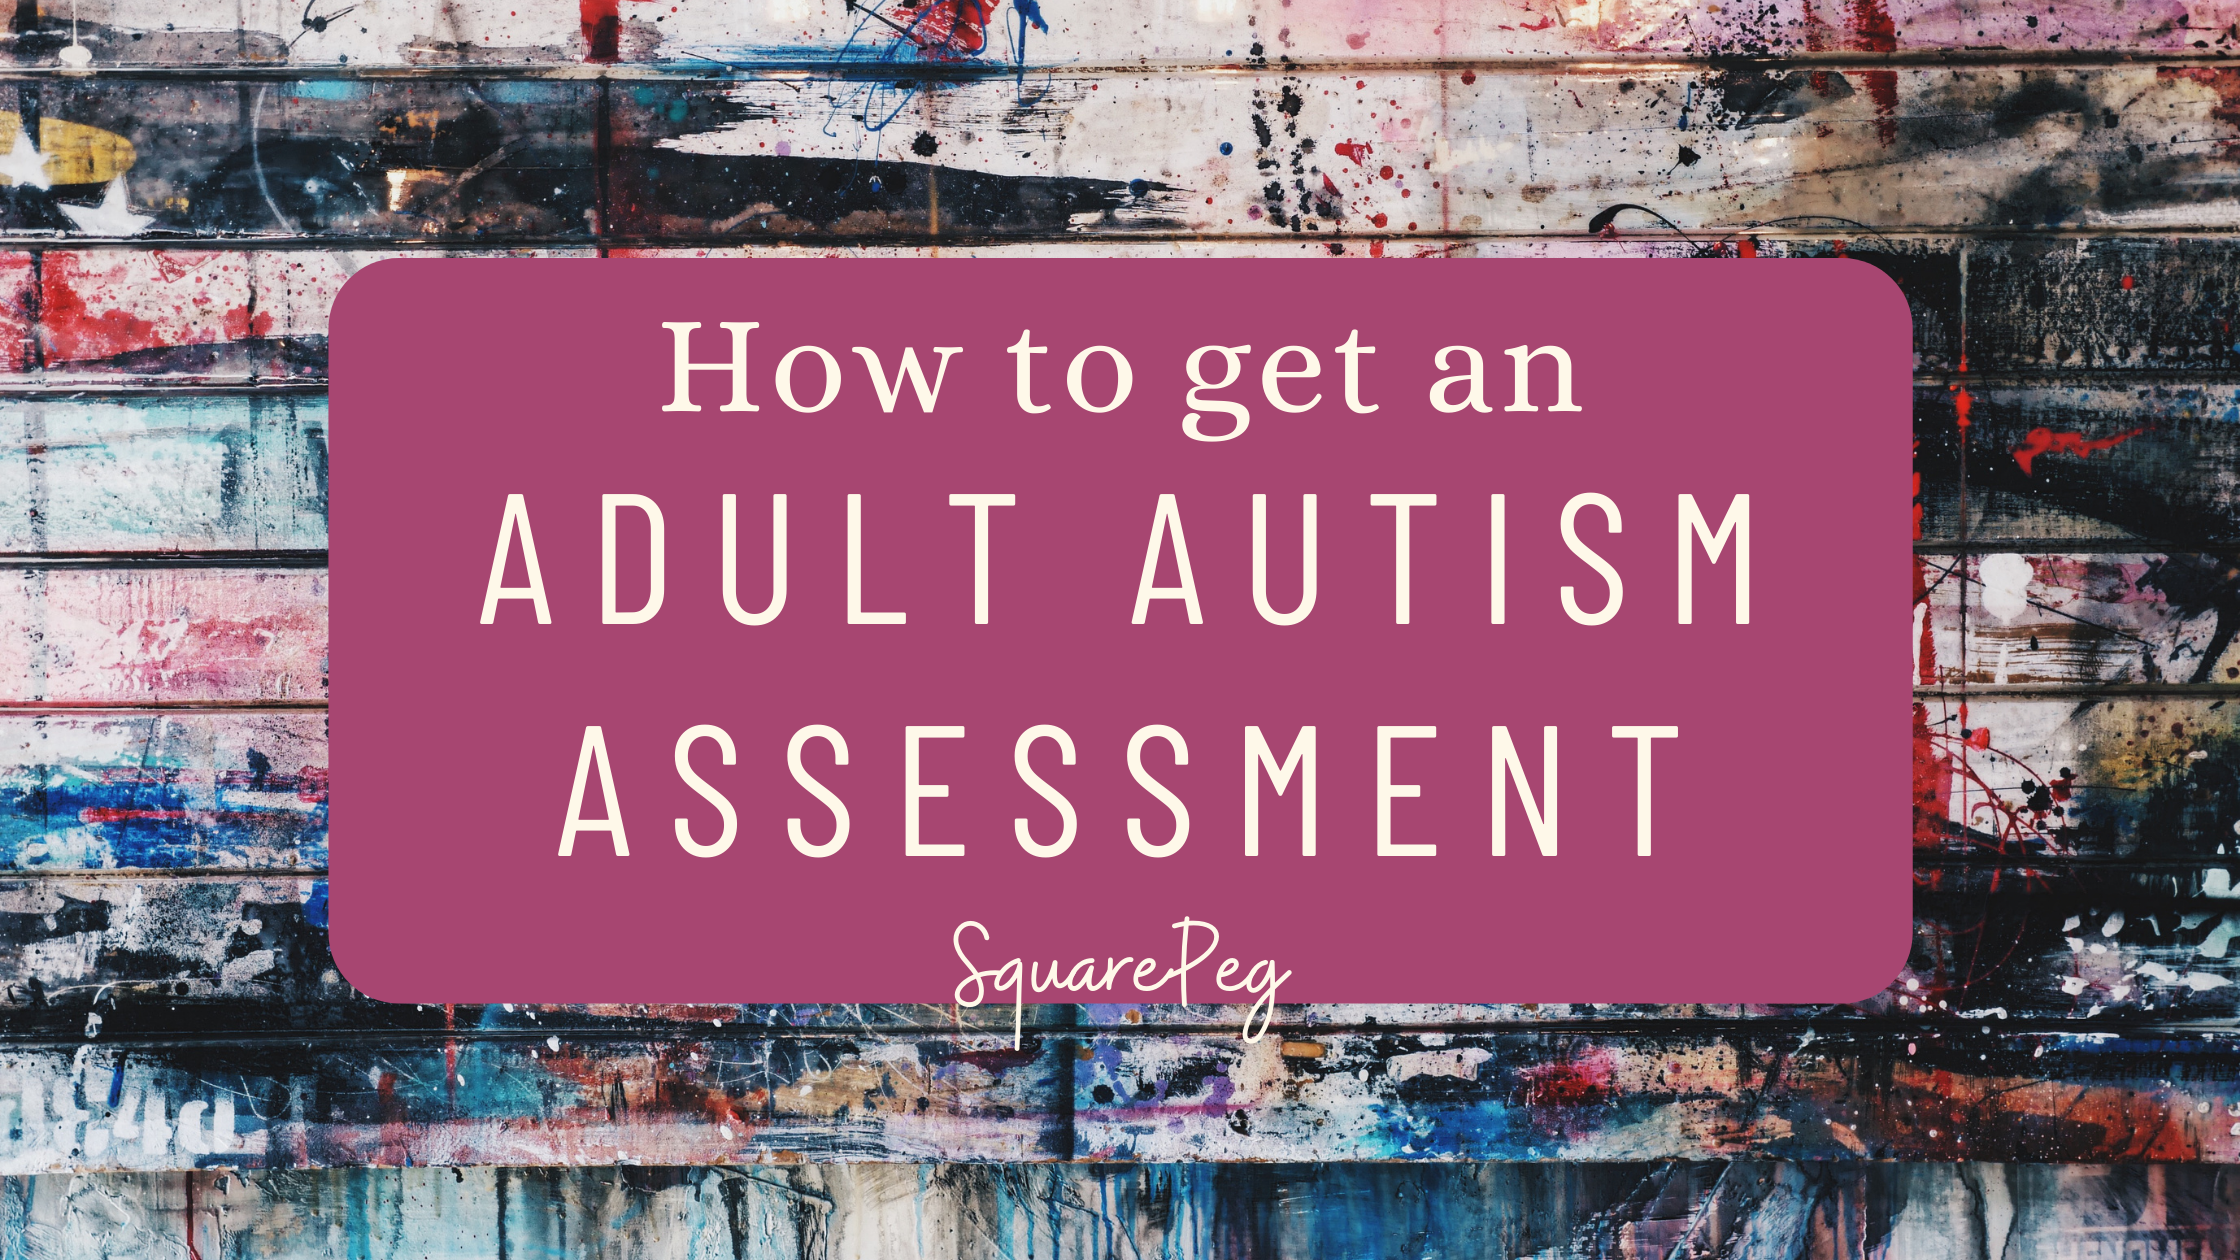 How to get an adult autism assessment